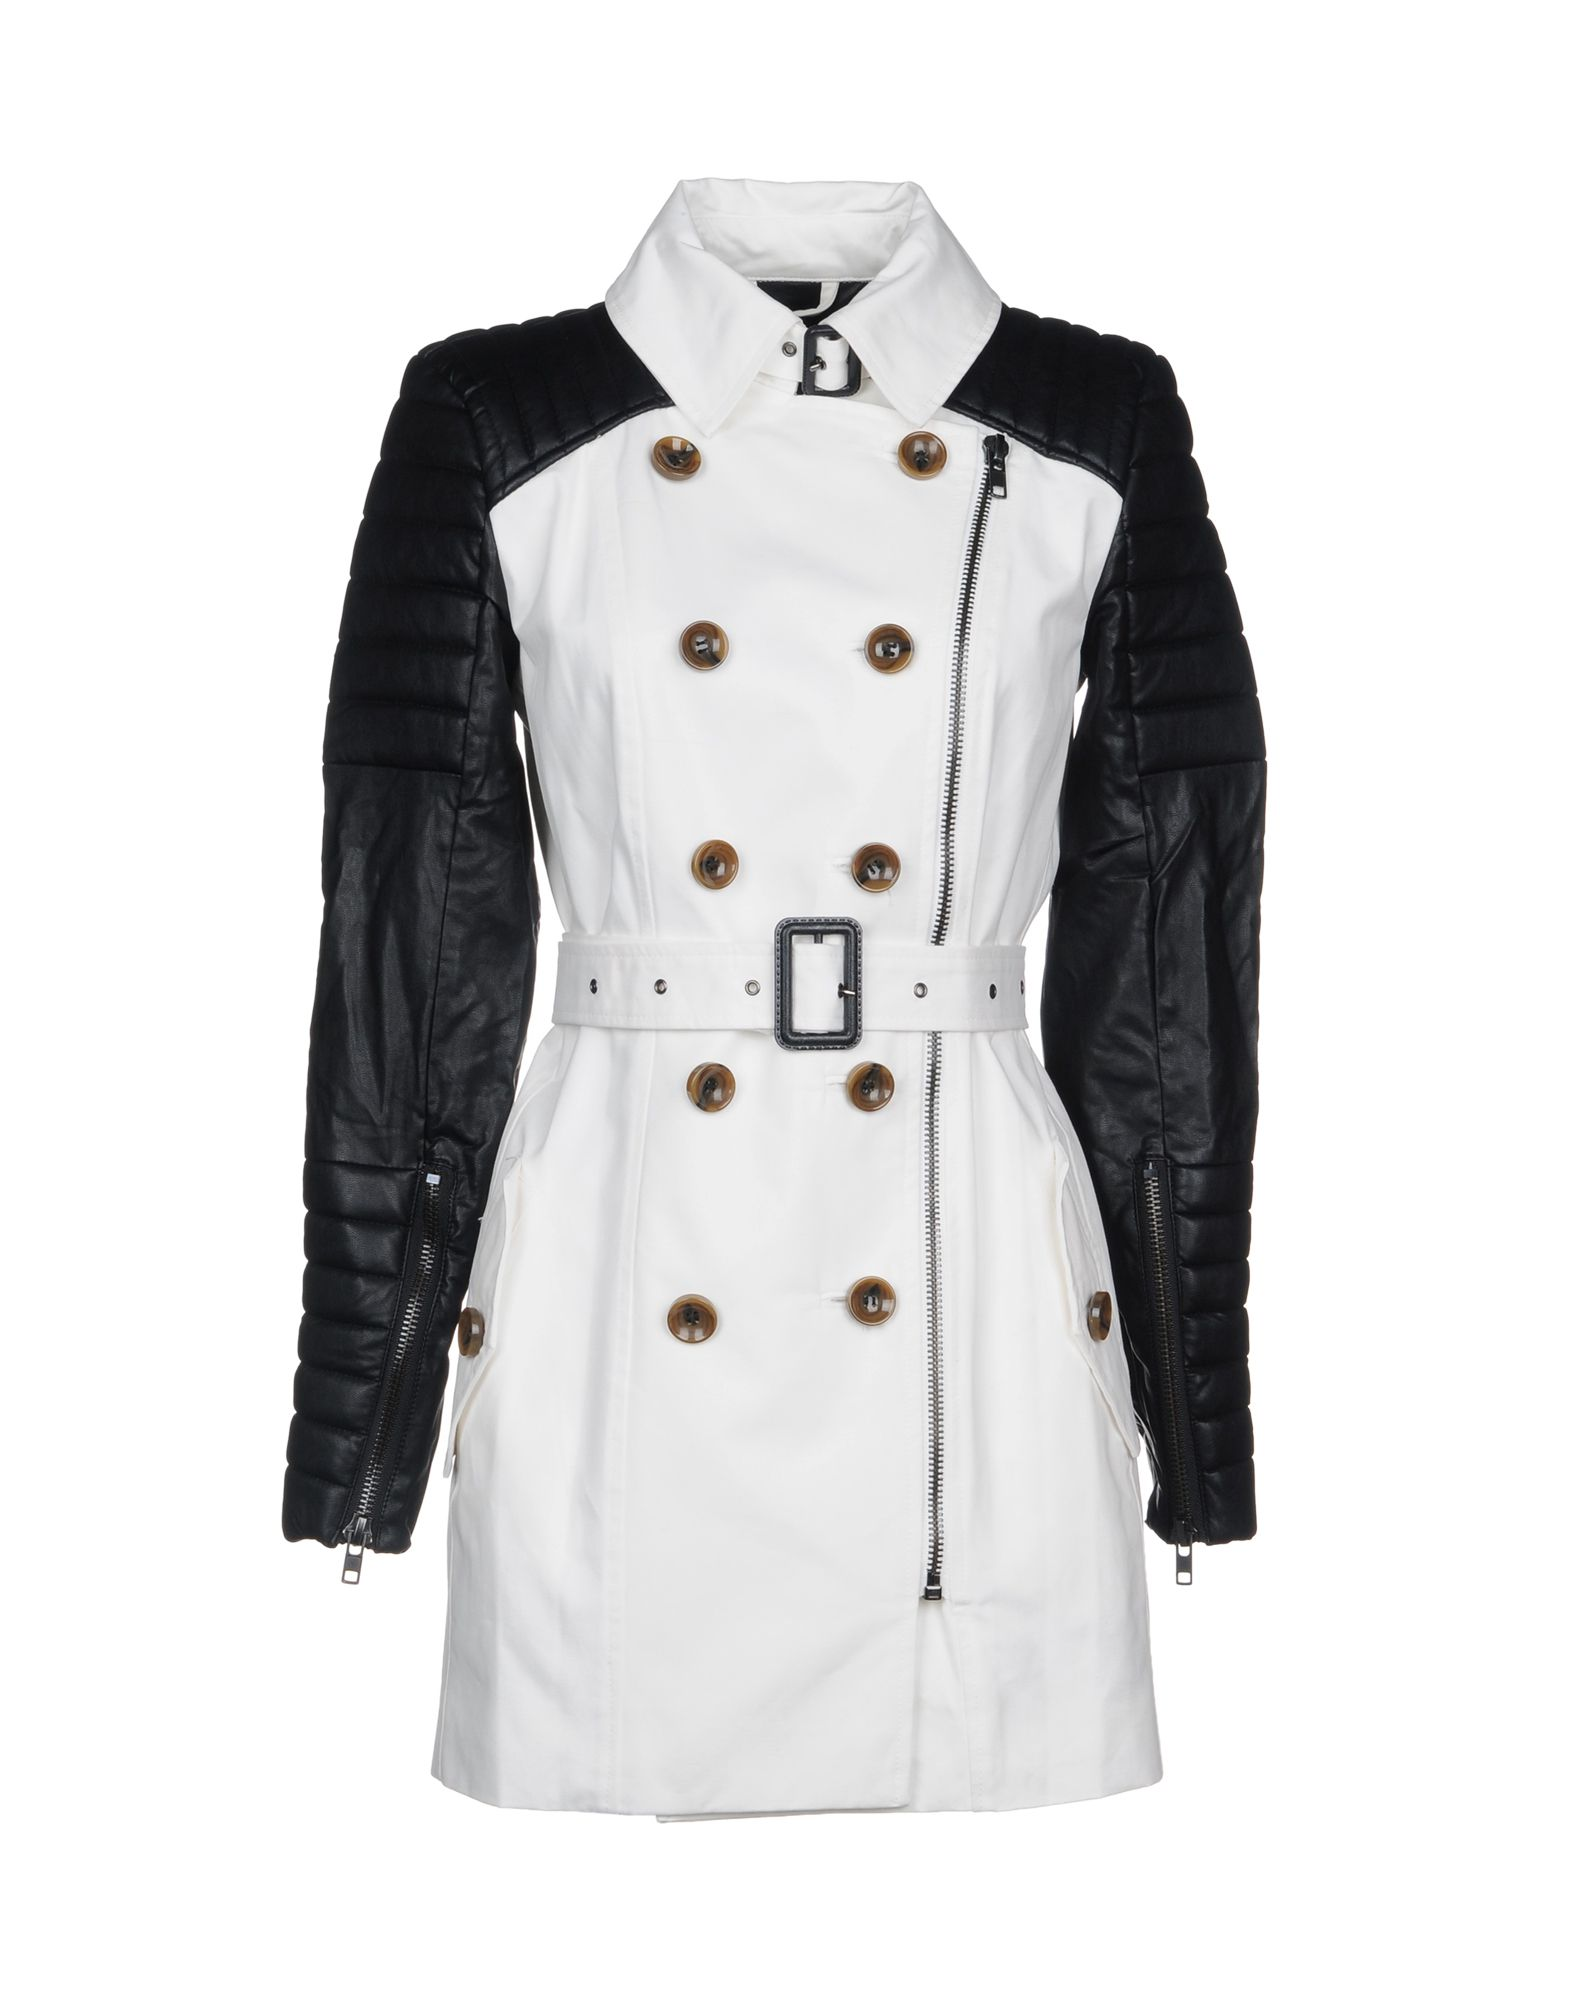 W118 BY WALTER BAKER Double Breasted Pea Coat in White